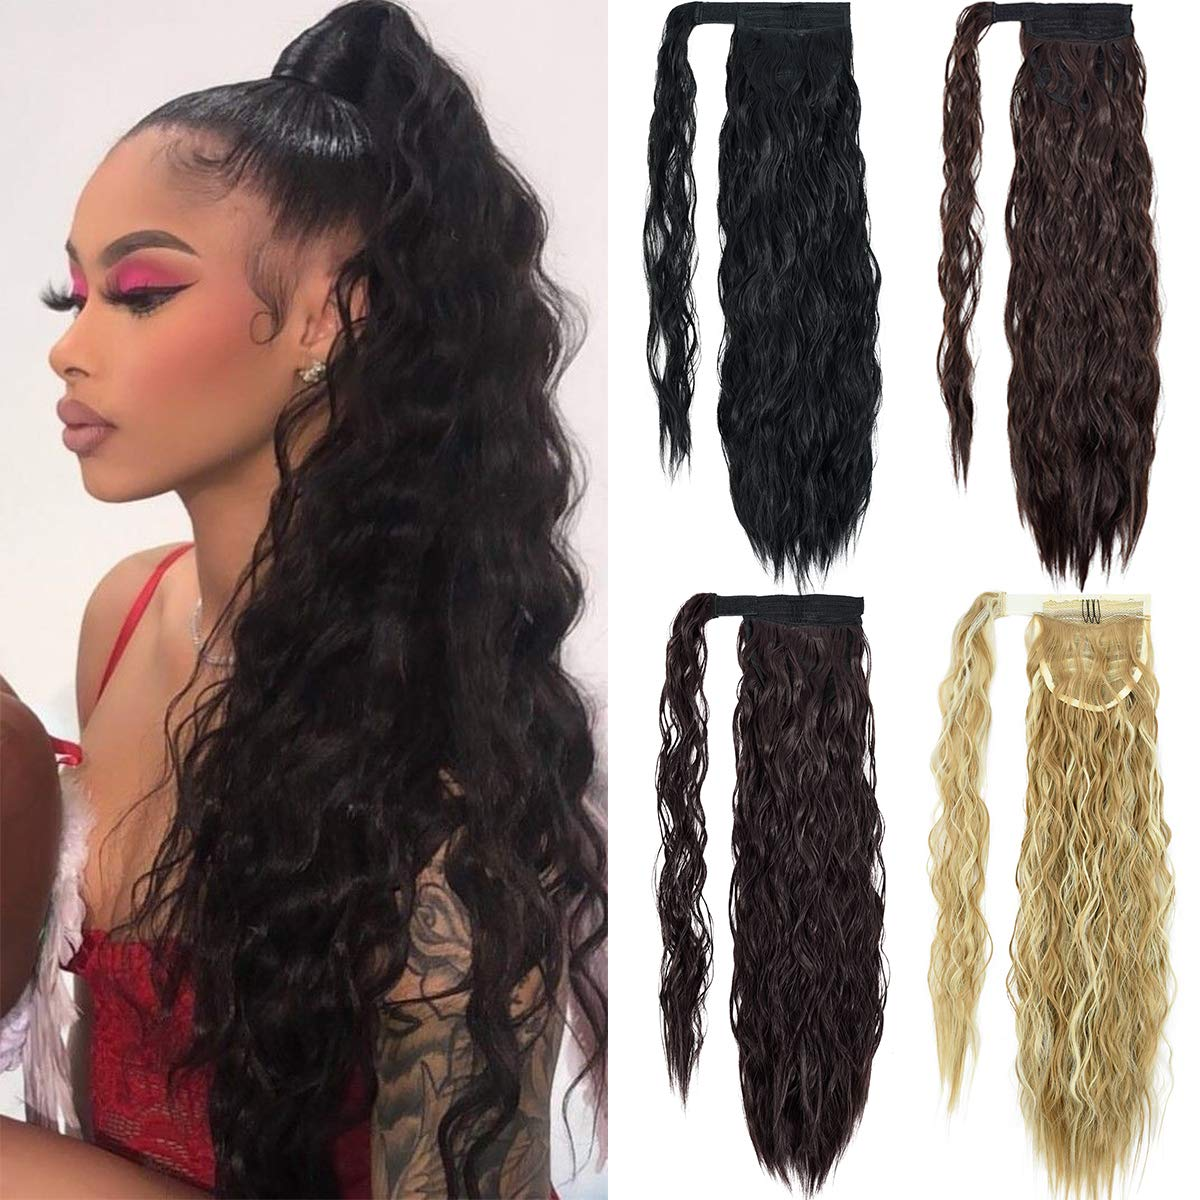 Amazon Com Emerlily Clip In Ponytail Extension Long Wave Pony Tail Hair Extensions 22 Inch Wrap Around Ponytails For Women Light Brown Beauty